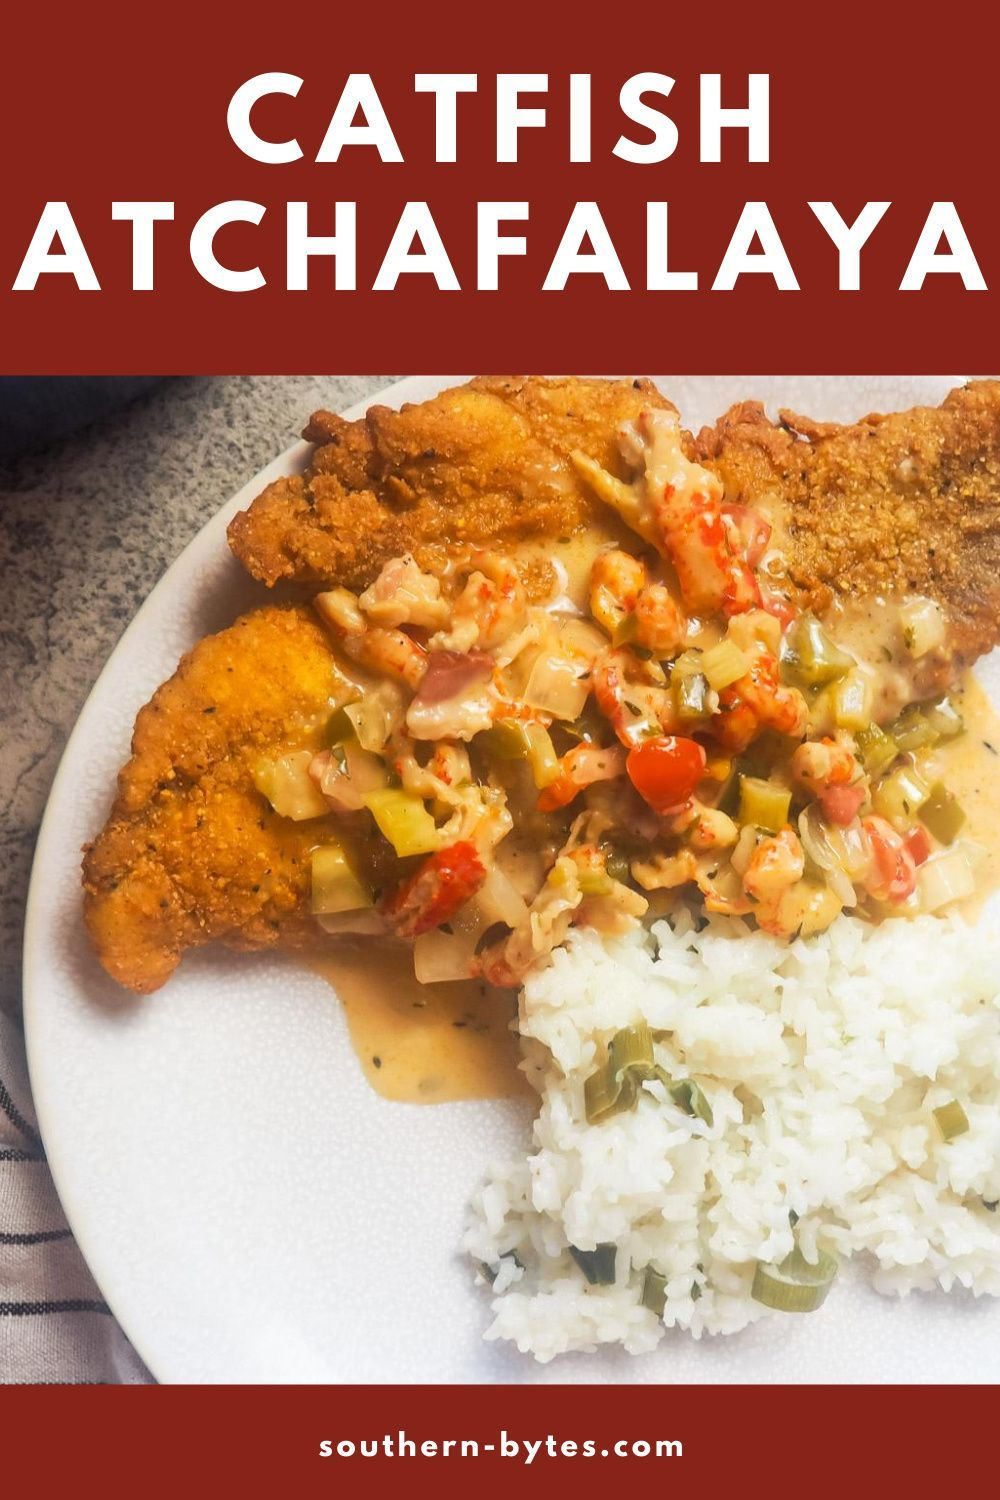 Catfish Atchafalaya Seafood Recipes Spicy Recipes Southern Fried Catfish